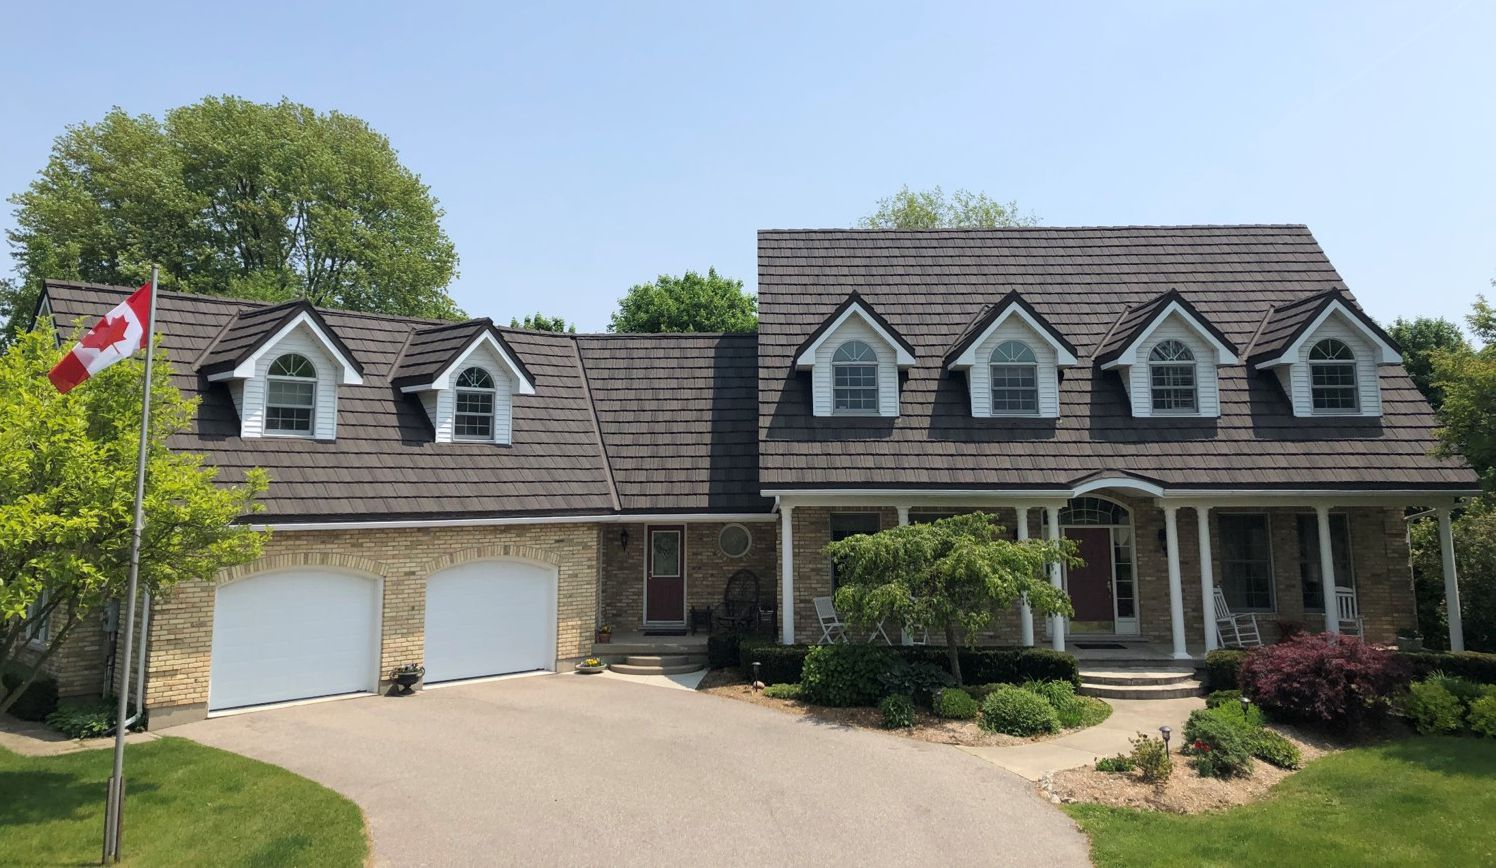 Pine Crest Shake Stone Coated Steel Roof in a cool brown tone